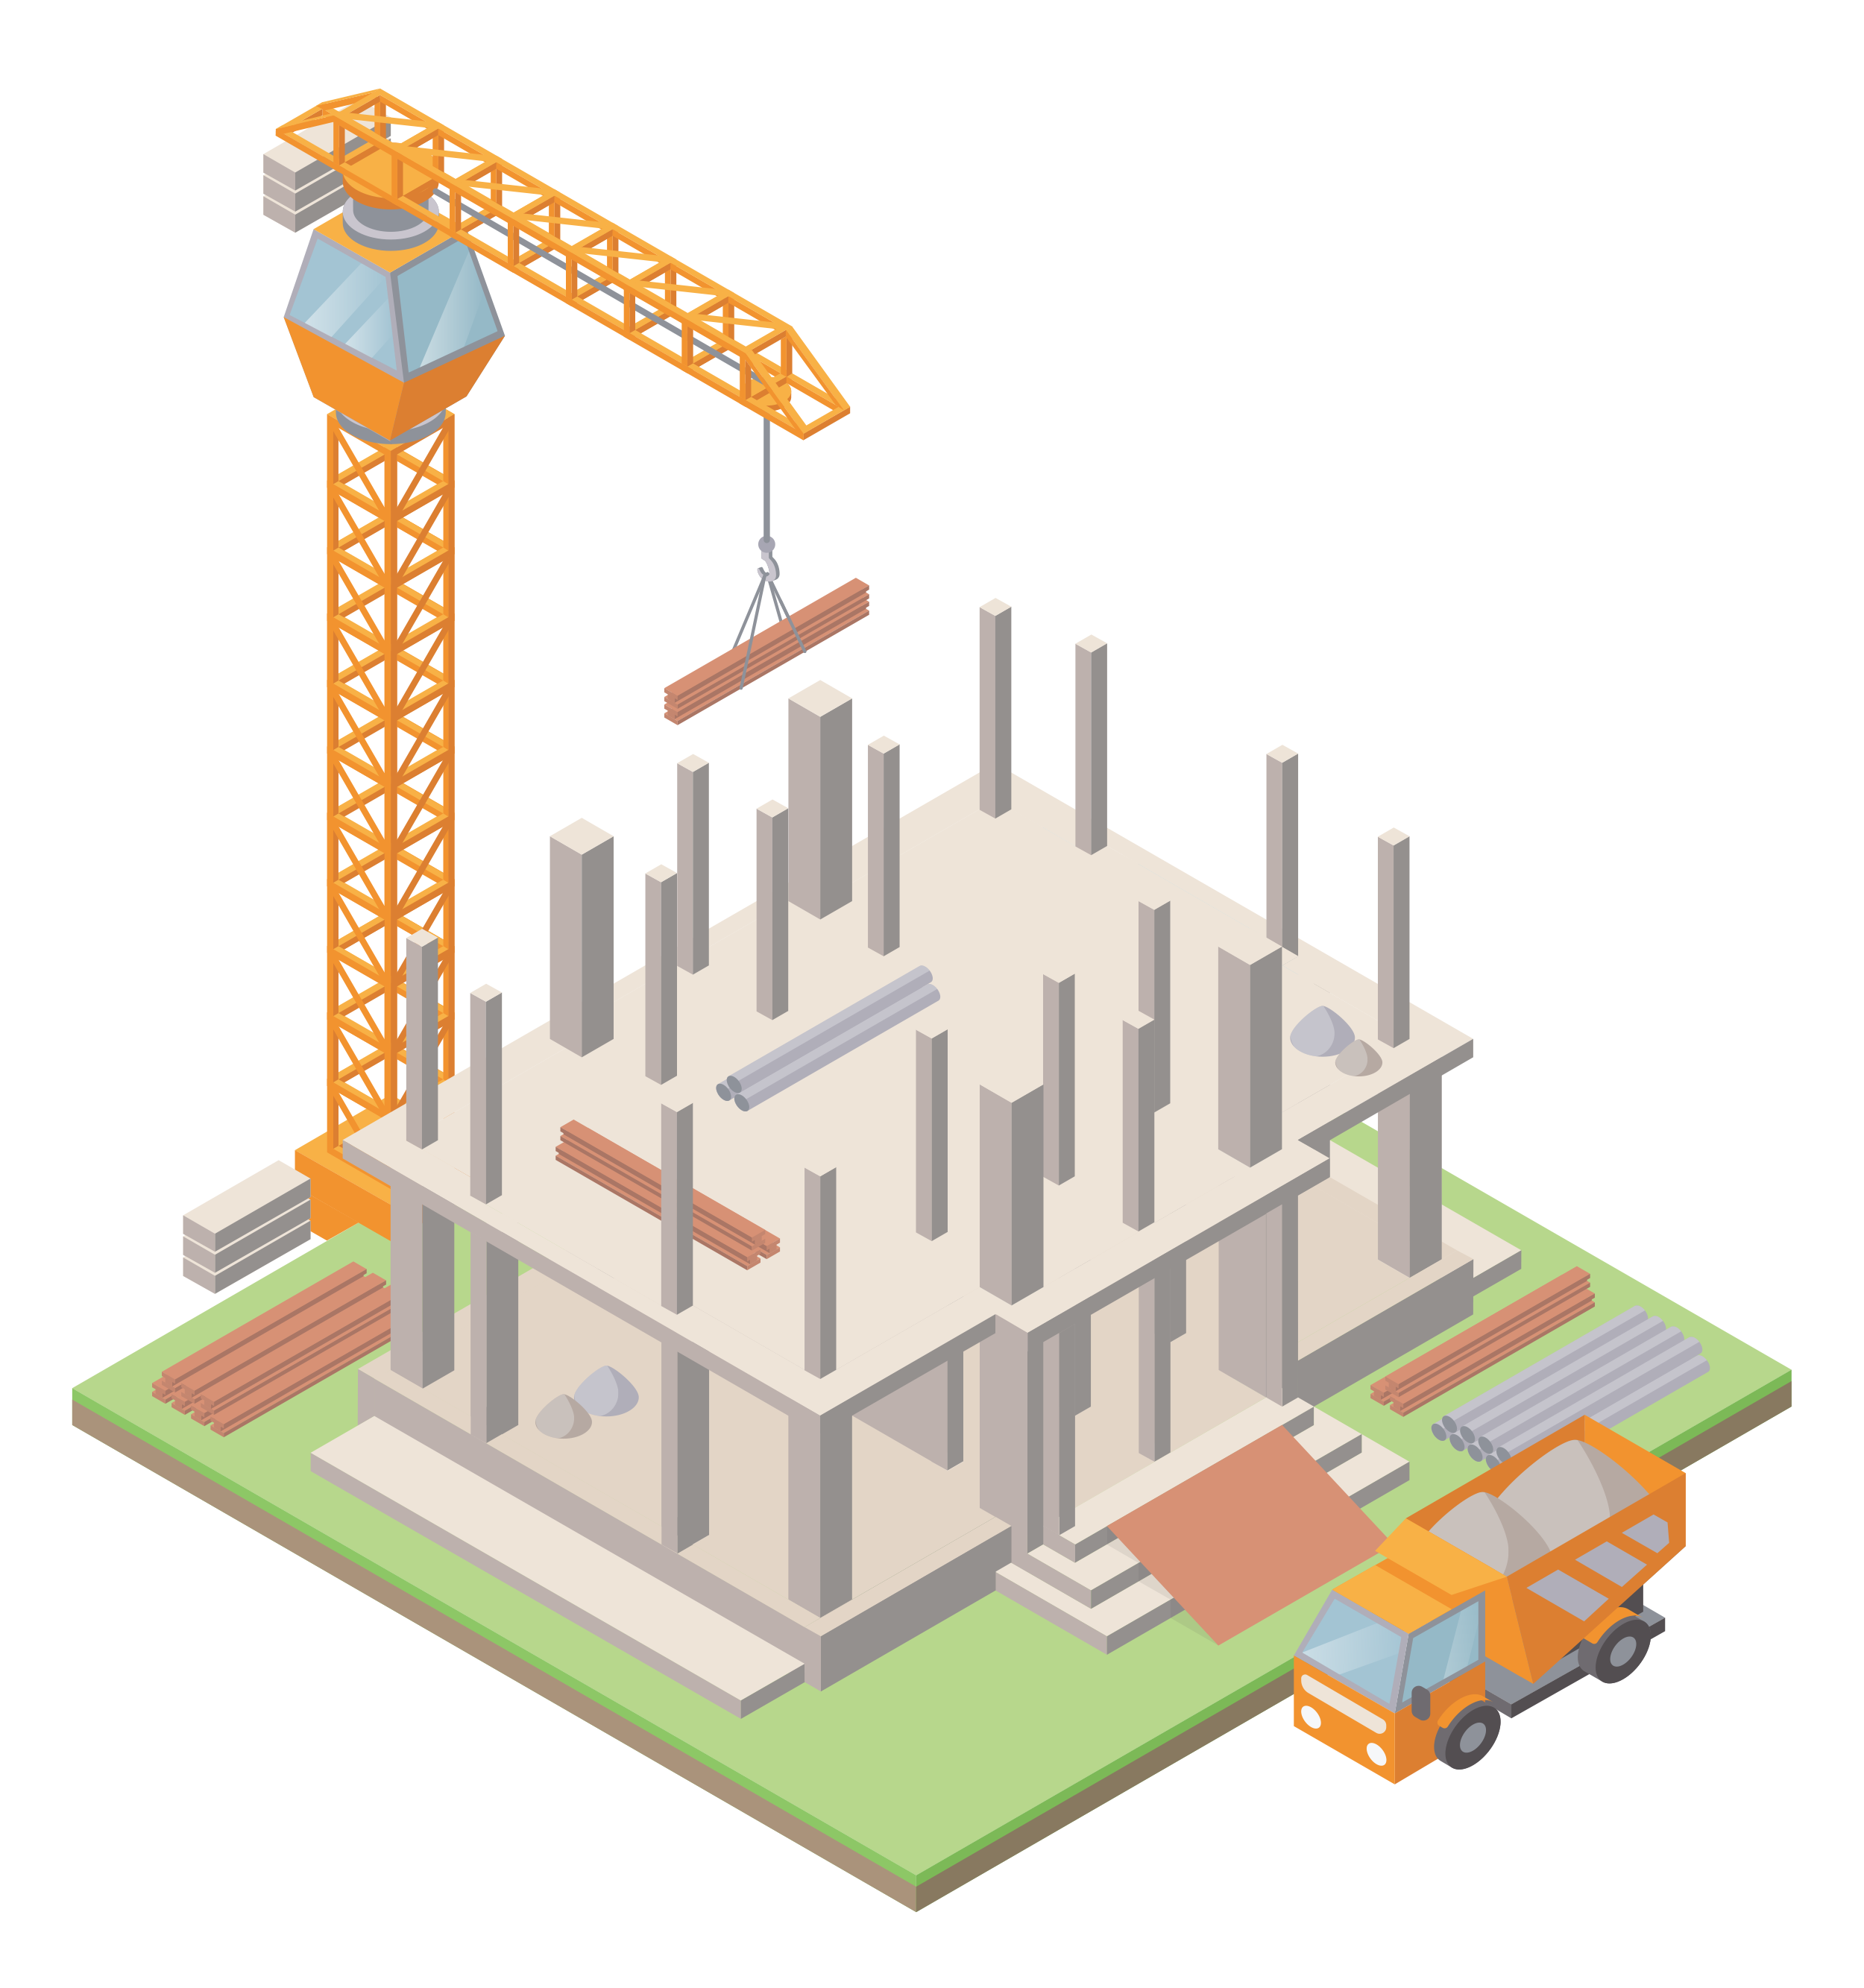 illustration_andre_levy_zhion_vector_isometric_perspective_infographic_construction_building_team_process_3.png